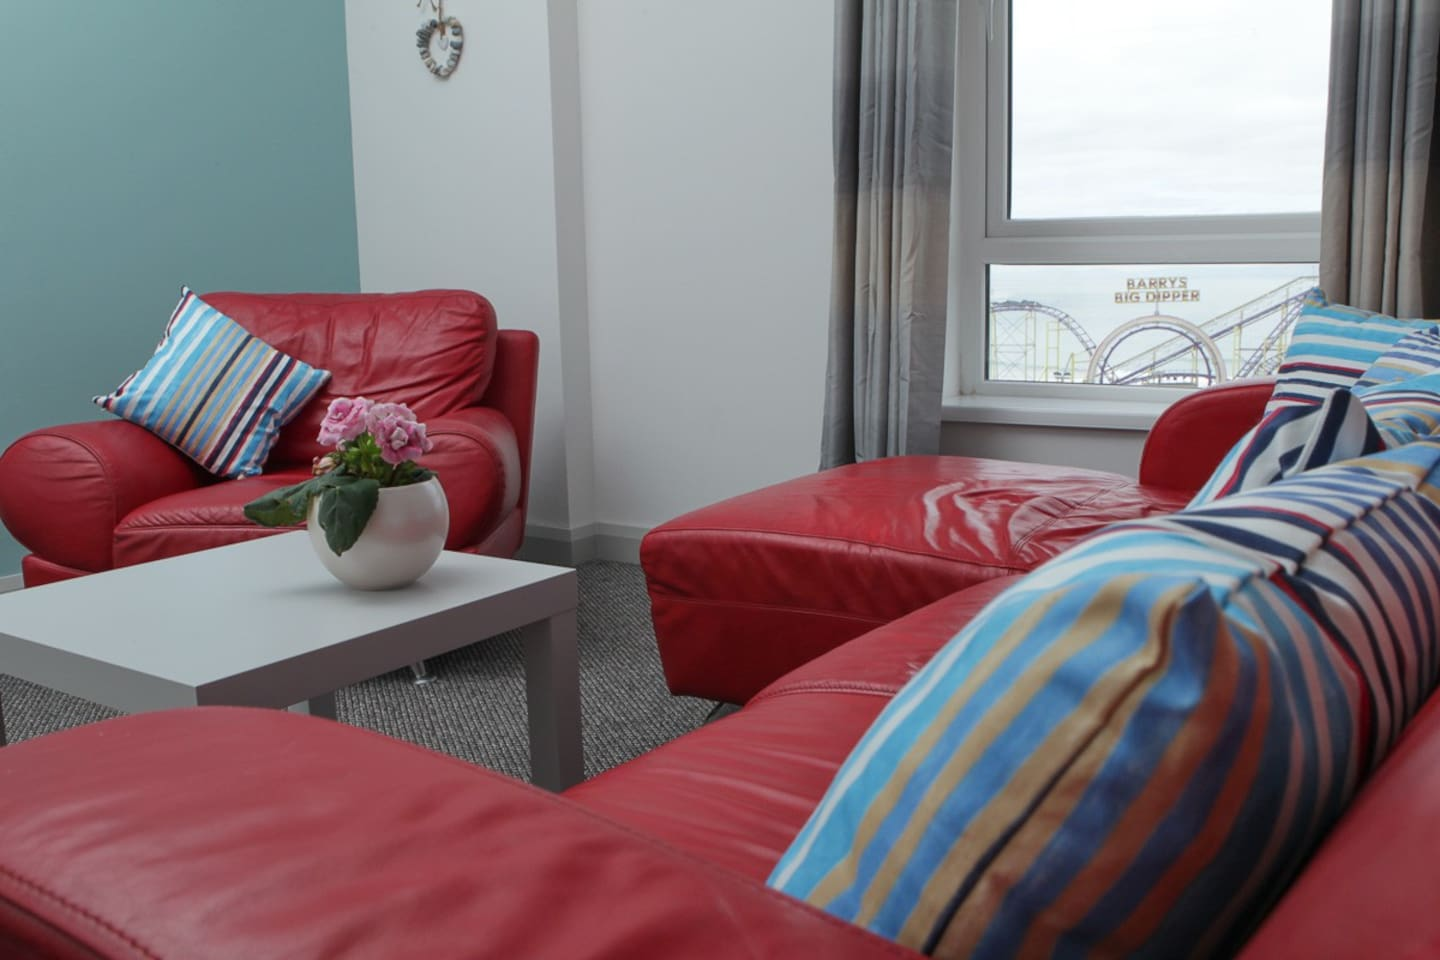 Living room with sea views overlooking Barry's,  one of Northern Ireland's leading attractions